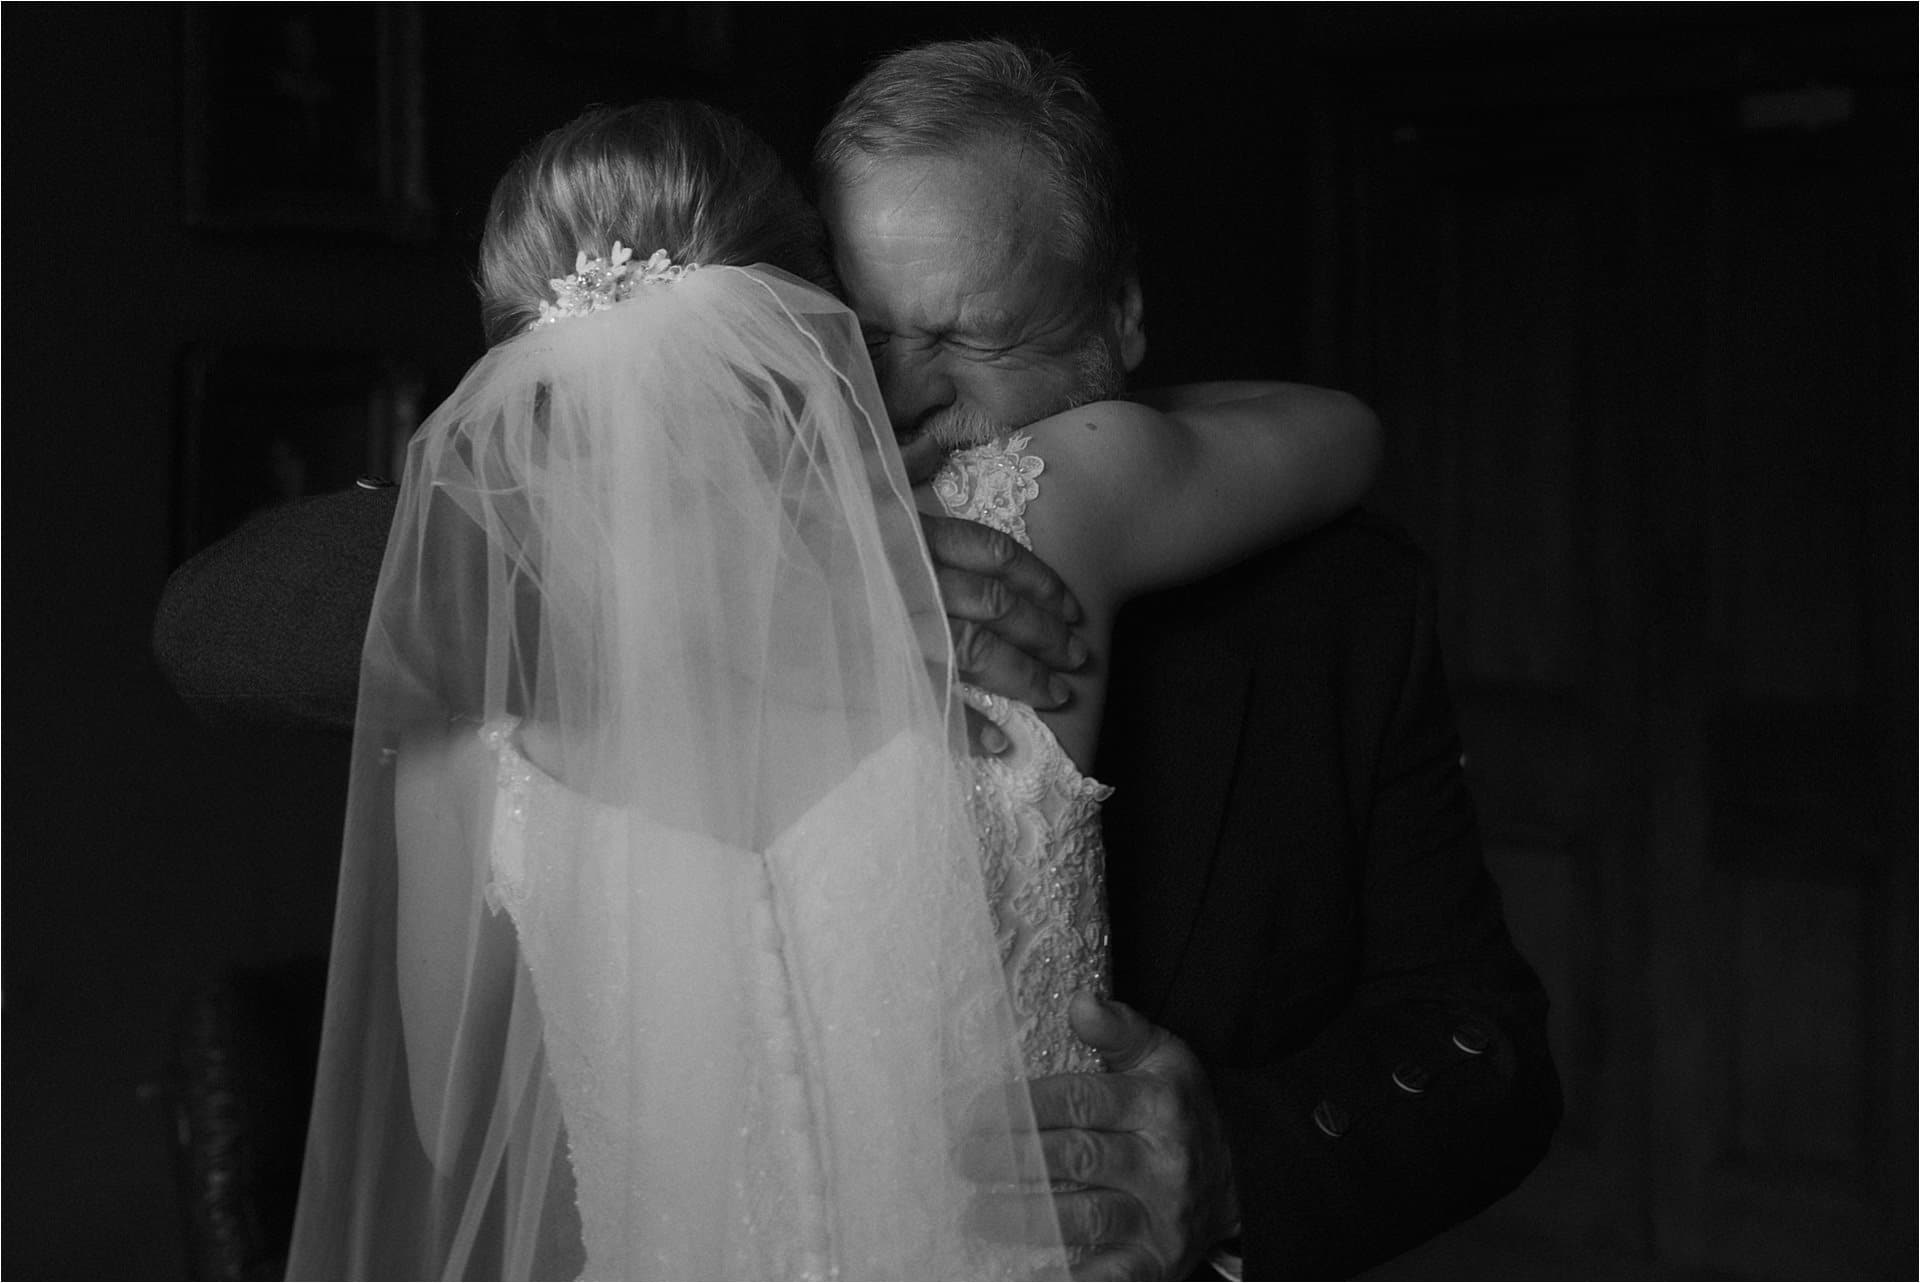 father sees bride for first time at wedding